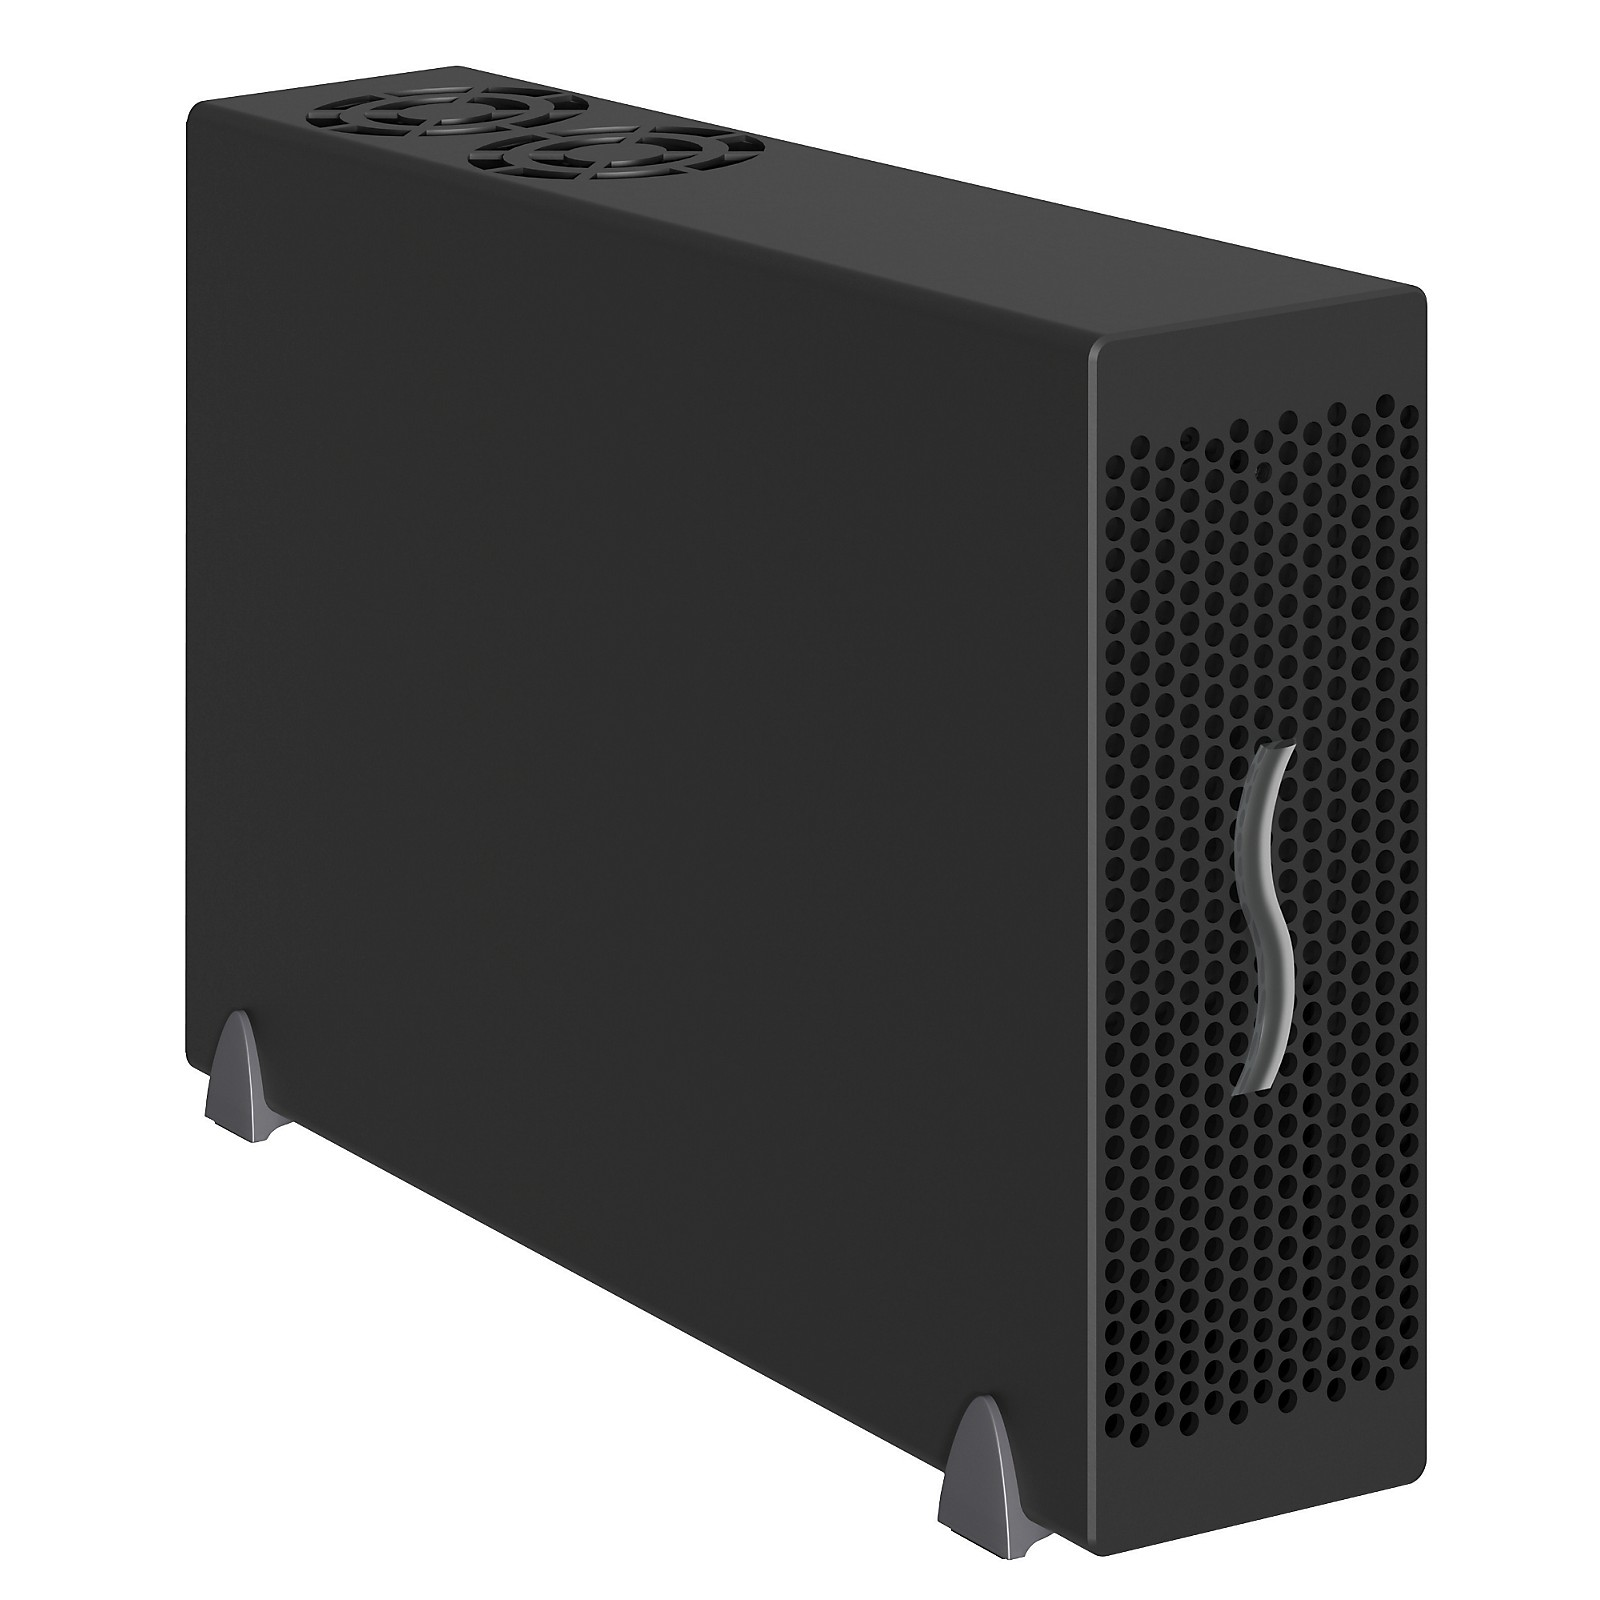 Open Box Sonnet Echo Express III-D Thunderbolt 2 Expansion Chassis for PCIe Cards